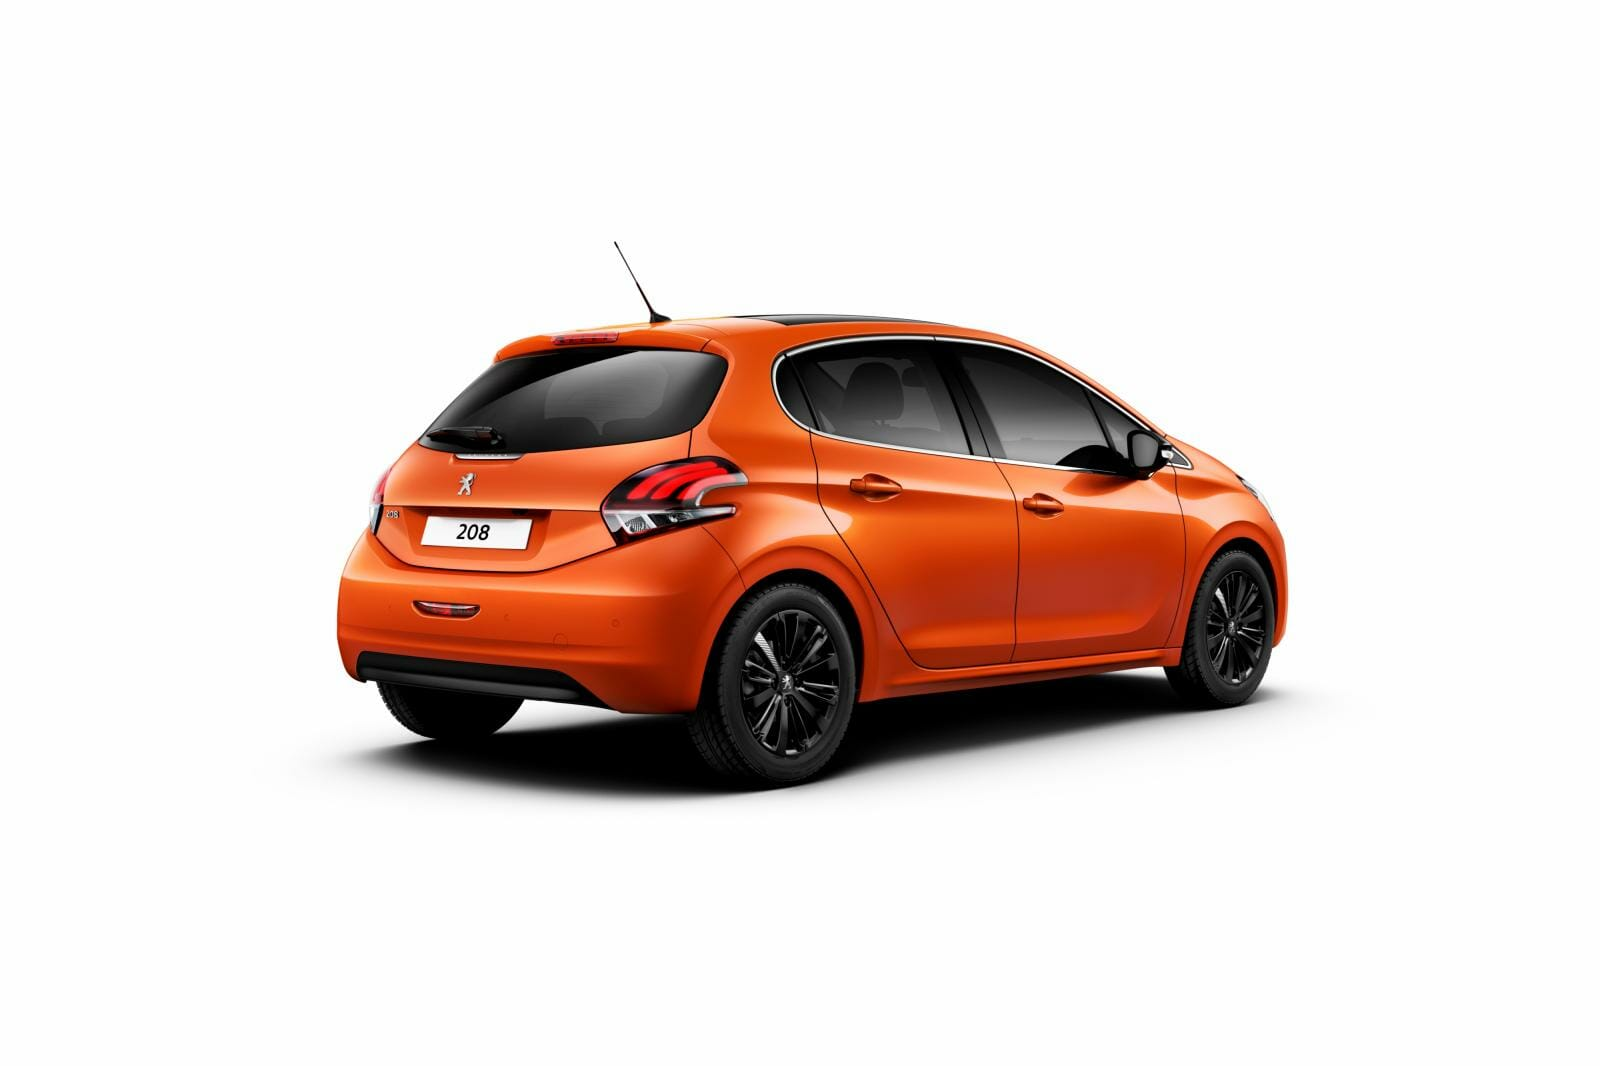 2015-peugeot-208-facelift-revealed-complete-with-12-turbo-and-orange-paint-video-photo-gallery_10